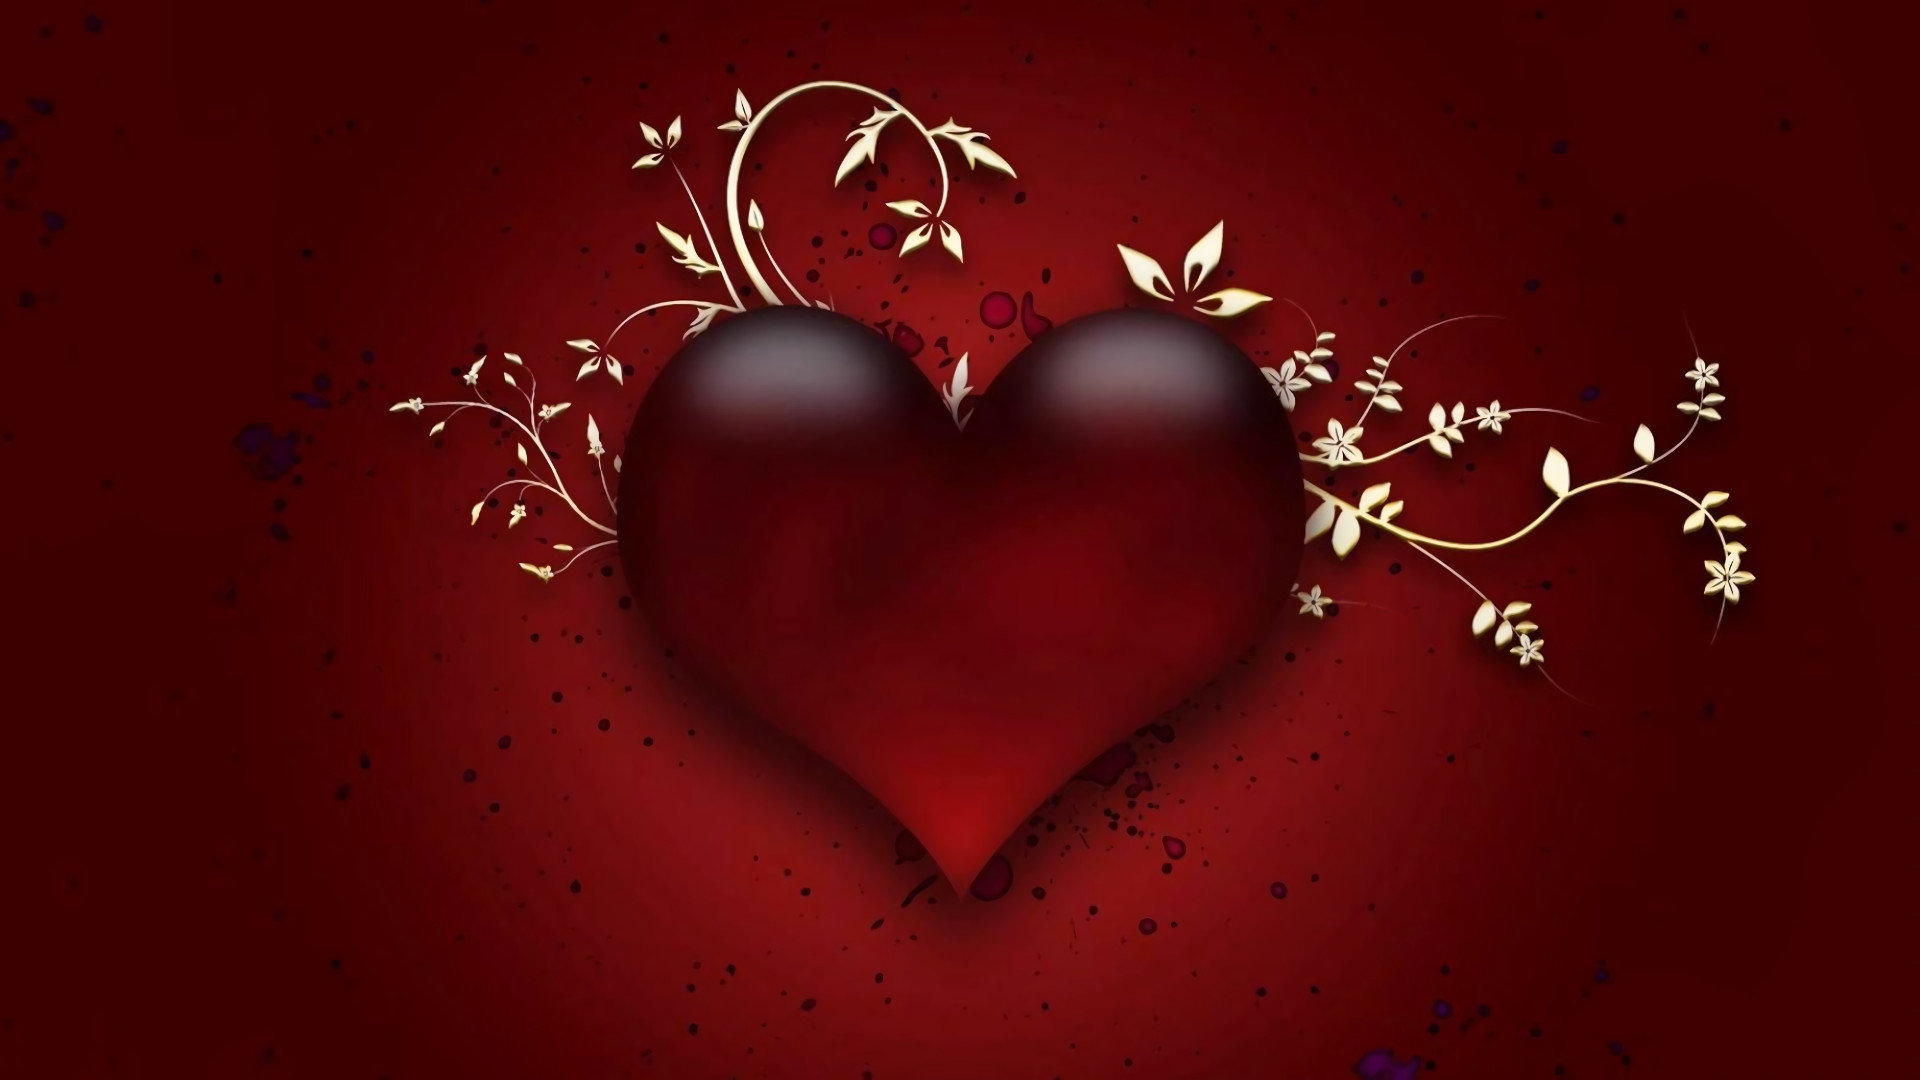 download hd 1080p heart pc wallpaper id:209249 for free